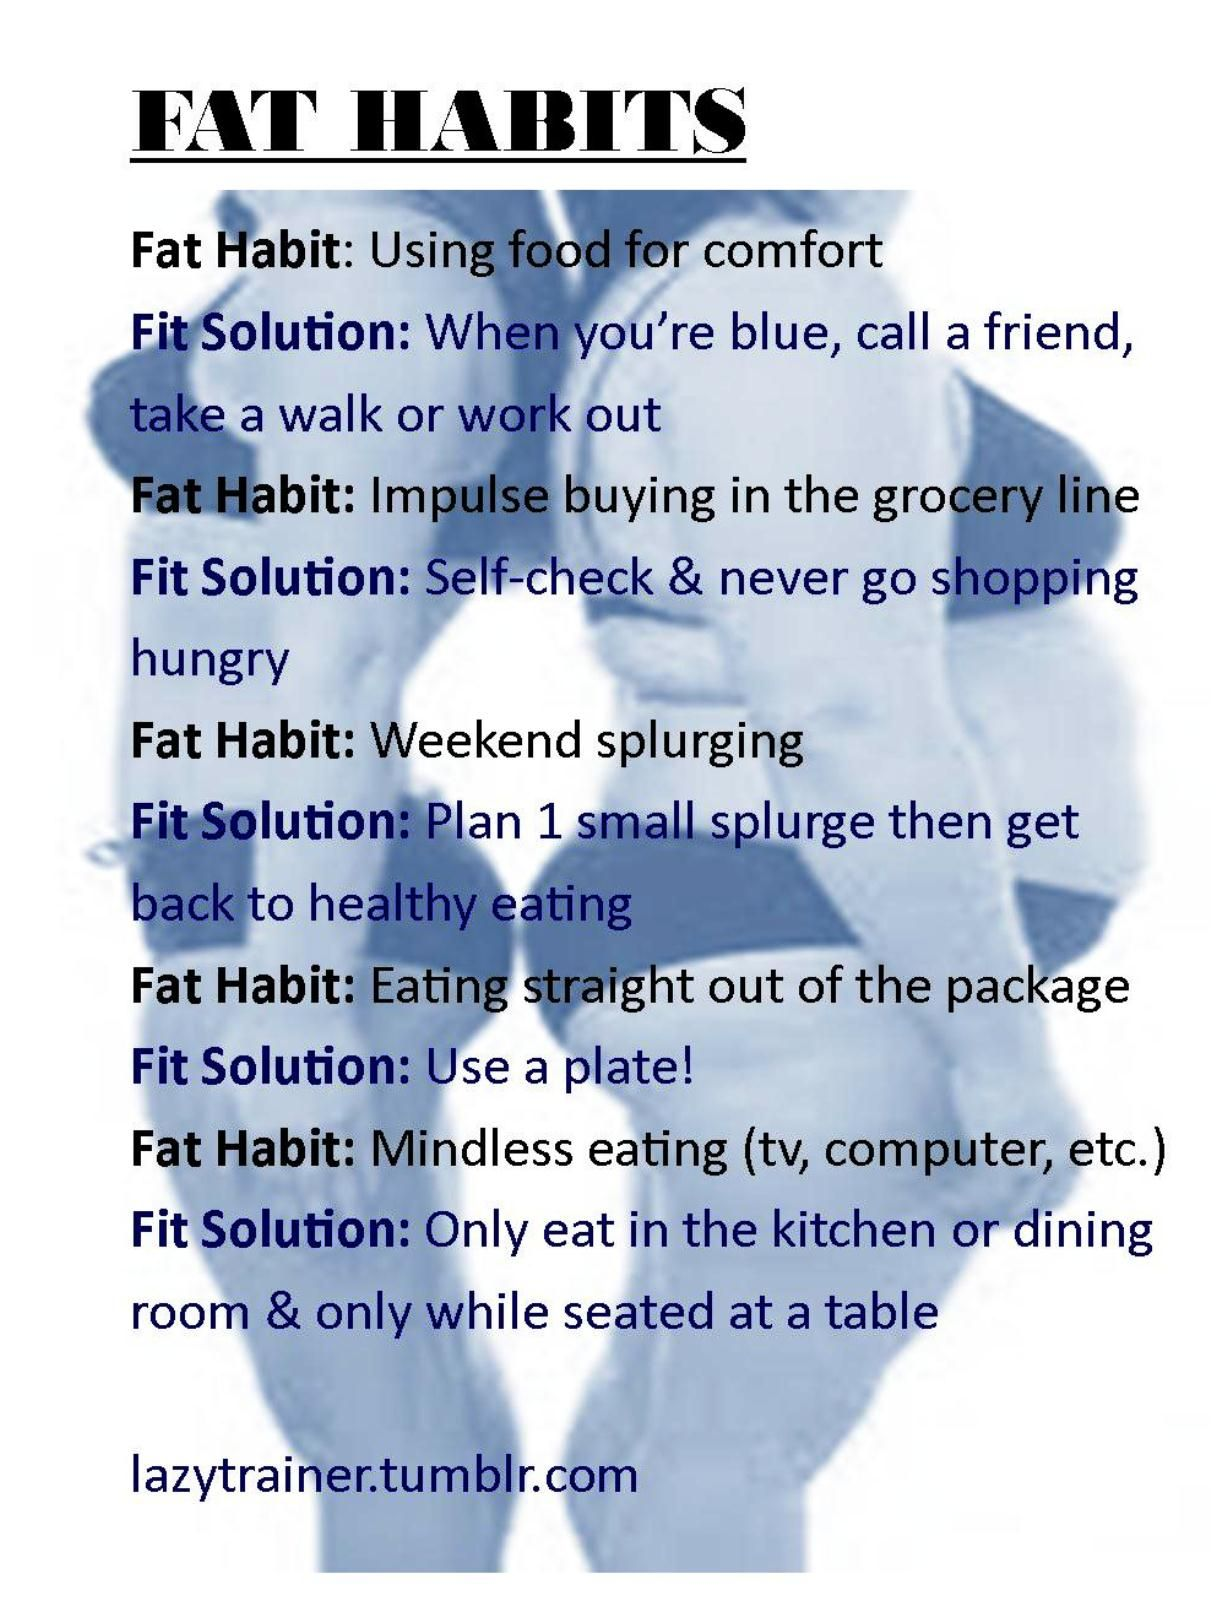 Fat habits | The Lazy Trainer | Pinterest | Fat and Weight loss